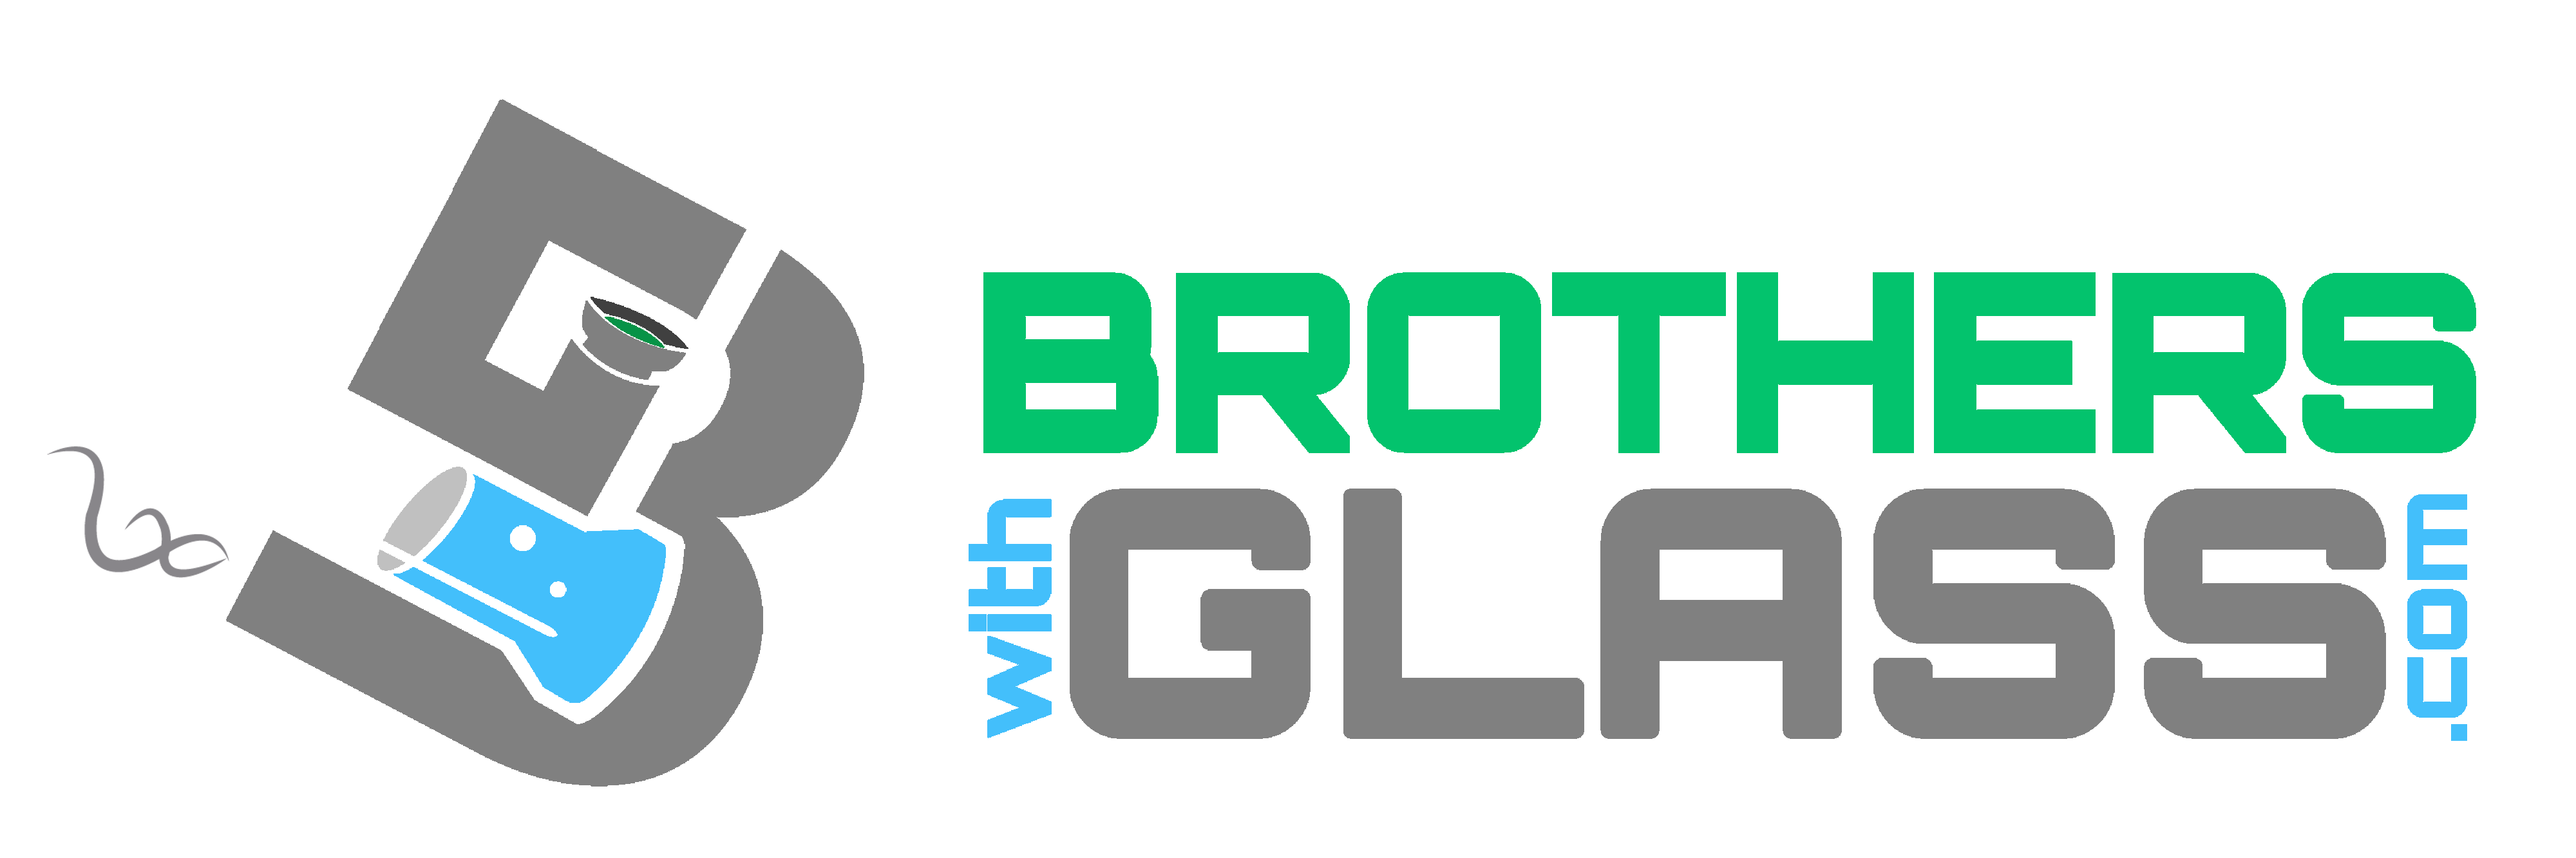 09-15-16-10-26-16_BWG_logo_NEW3-1.png